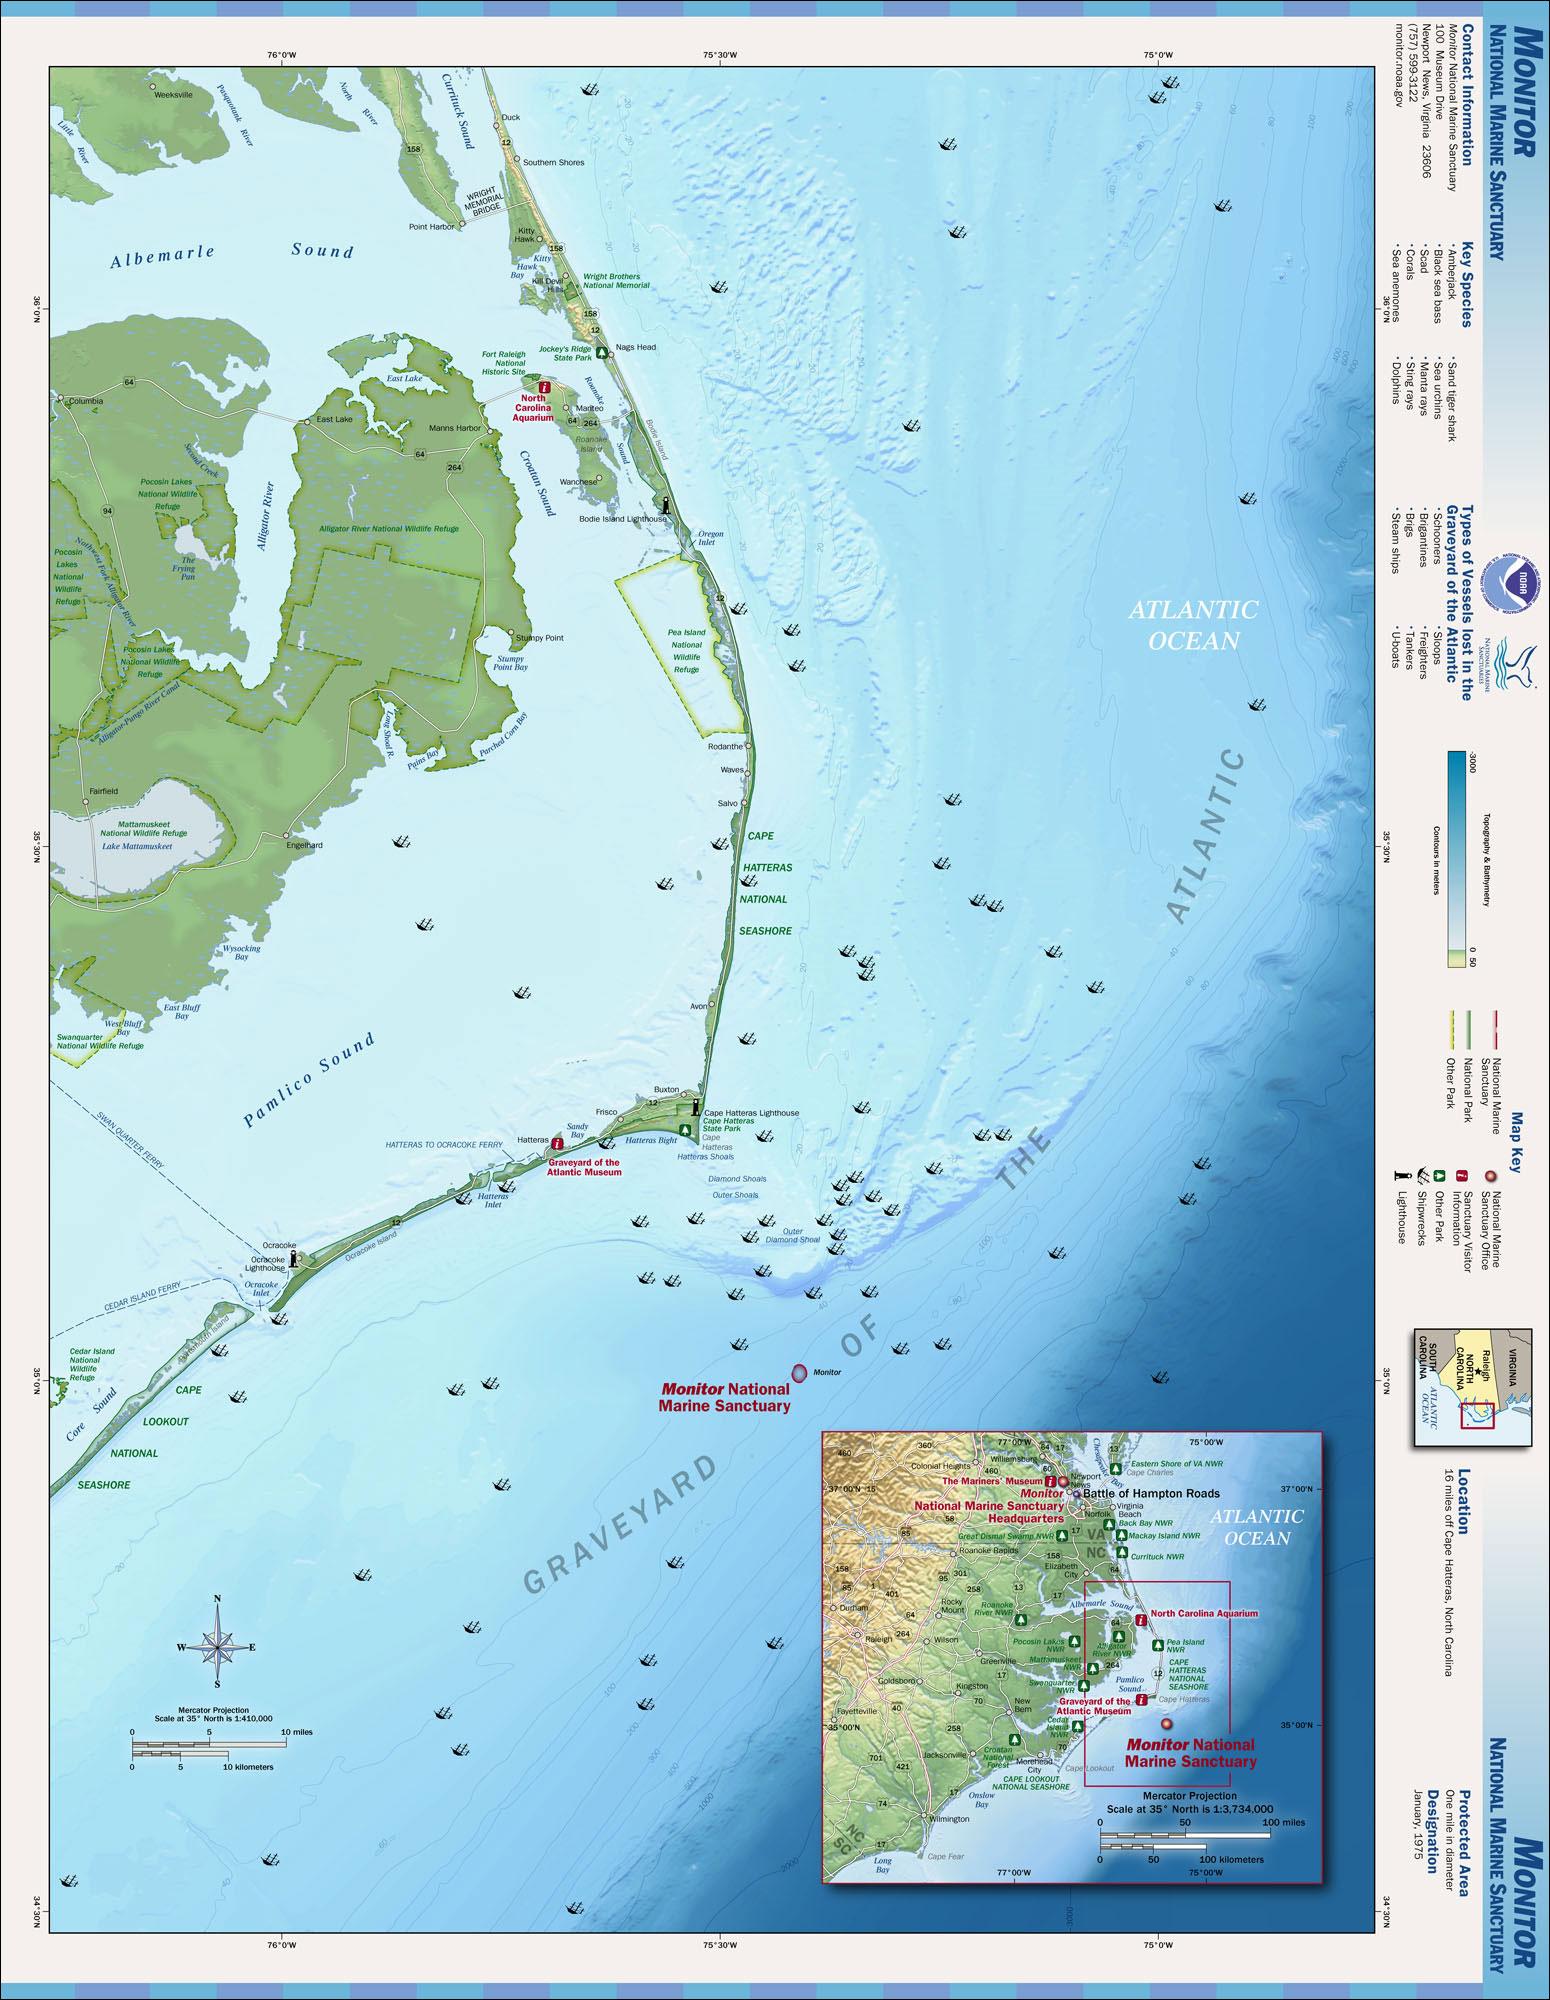 File:Outer Banks map.jpg - Wikimedia Commons